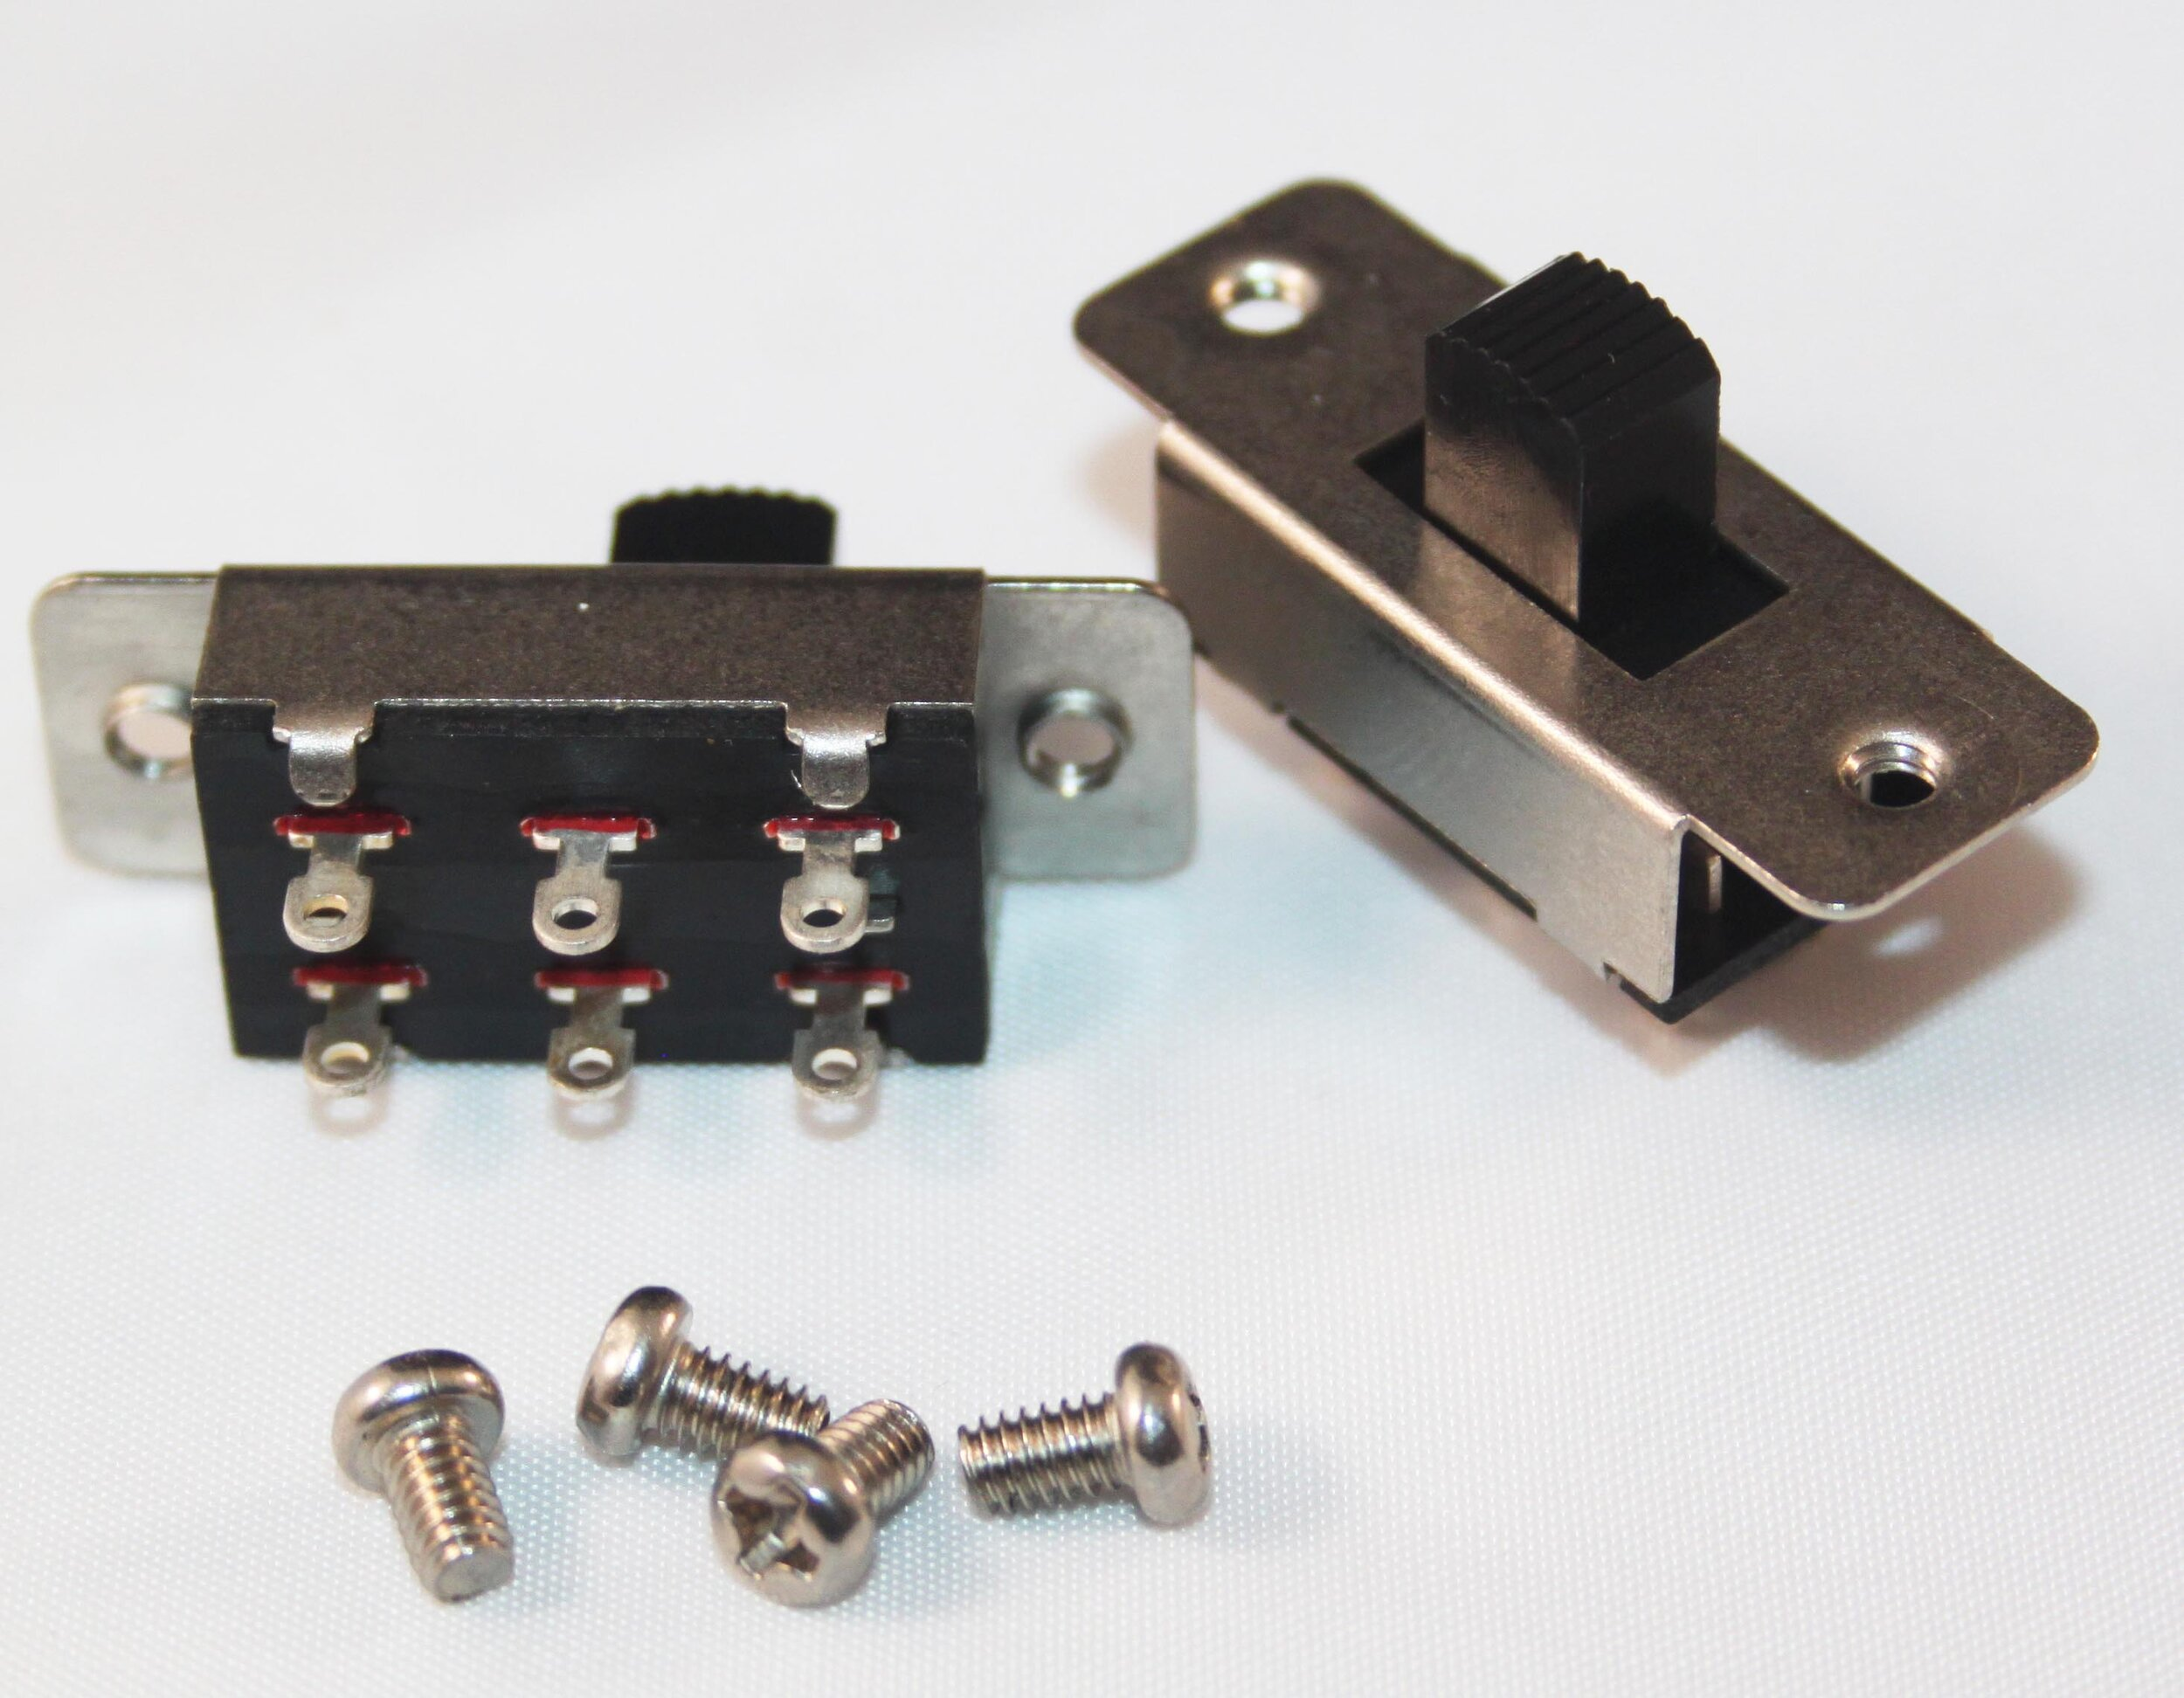 """SLIDE SWITCHES - Small Slide Switches (Pack of 5) - Code: SSWSDPDT. ON-OFF. Supplied with 2 screws per switch.Price: $4.93 (1 - 4 pkts); $4.81 (5 - 9 pkts); $4.64 (10 - 19 pkts); $4.38 (20+)Small Slide Switches with Wires (Pack of 5) - Code: SSWS-WDPDT. ON-OFF. With 100mm Wires. Supplied with 2 screws per switch.Price: $5.19 (1 - 4 pkts); $5.00 (5 - 9 pkts); $4.79 (10 - 19 pkts); $4.70 (20+)Large Slide Switches (Pack of 5) - Code: SSWLDPDT. ON-OFF-ON. With centre """"OFF"""" position. Can be used as a forward/off/reverse switch for solar panels.Supplied with 2 screws per switch.Price: $6.09 (1 - 4 pkts); $6.02 (5 - 9 pkts); $5.72 (10 - 19 pkts); $5.49 (20+)"""